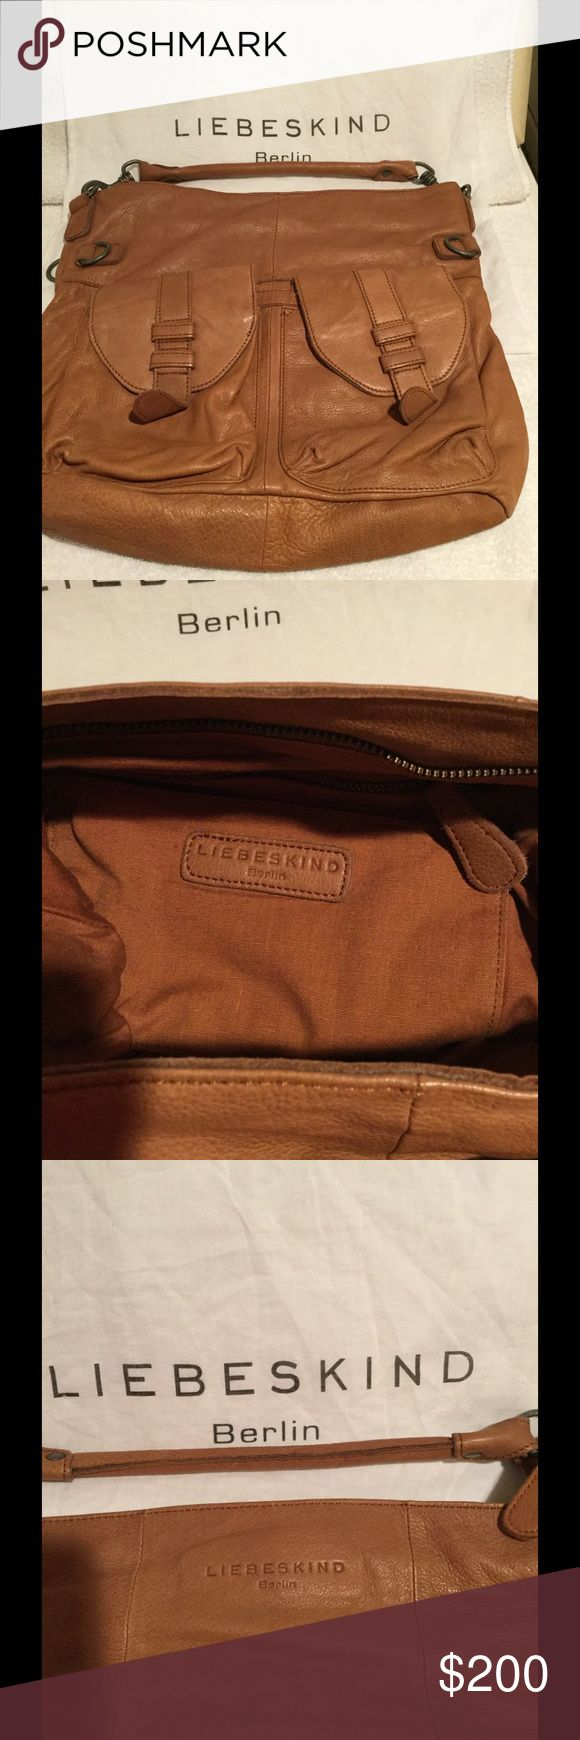 Authentic Berlin Liebskind leather purse !! Never used, just stored, comes with dust bag! Brown so soft leather and you can still smell the leather! Large tote size bag, great pocket space! Liebeskind Bags Shoulder Bags